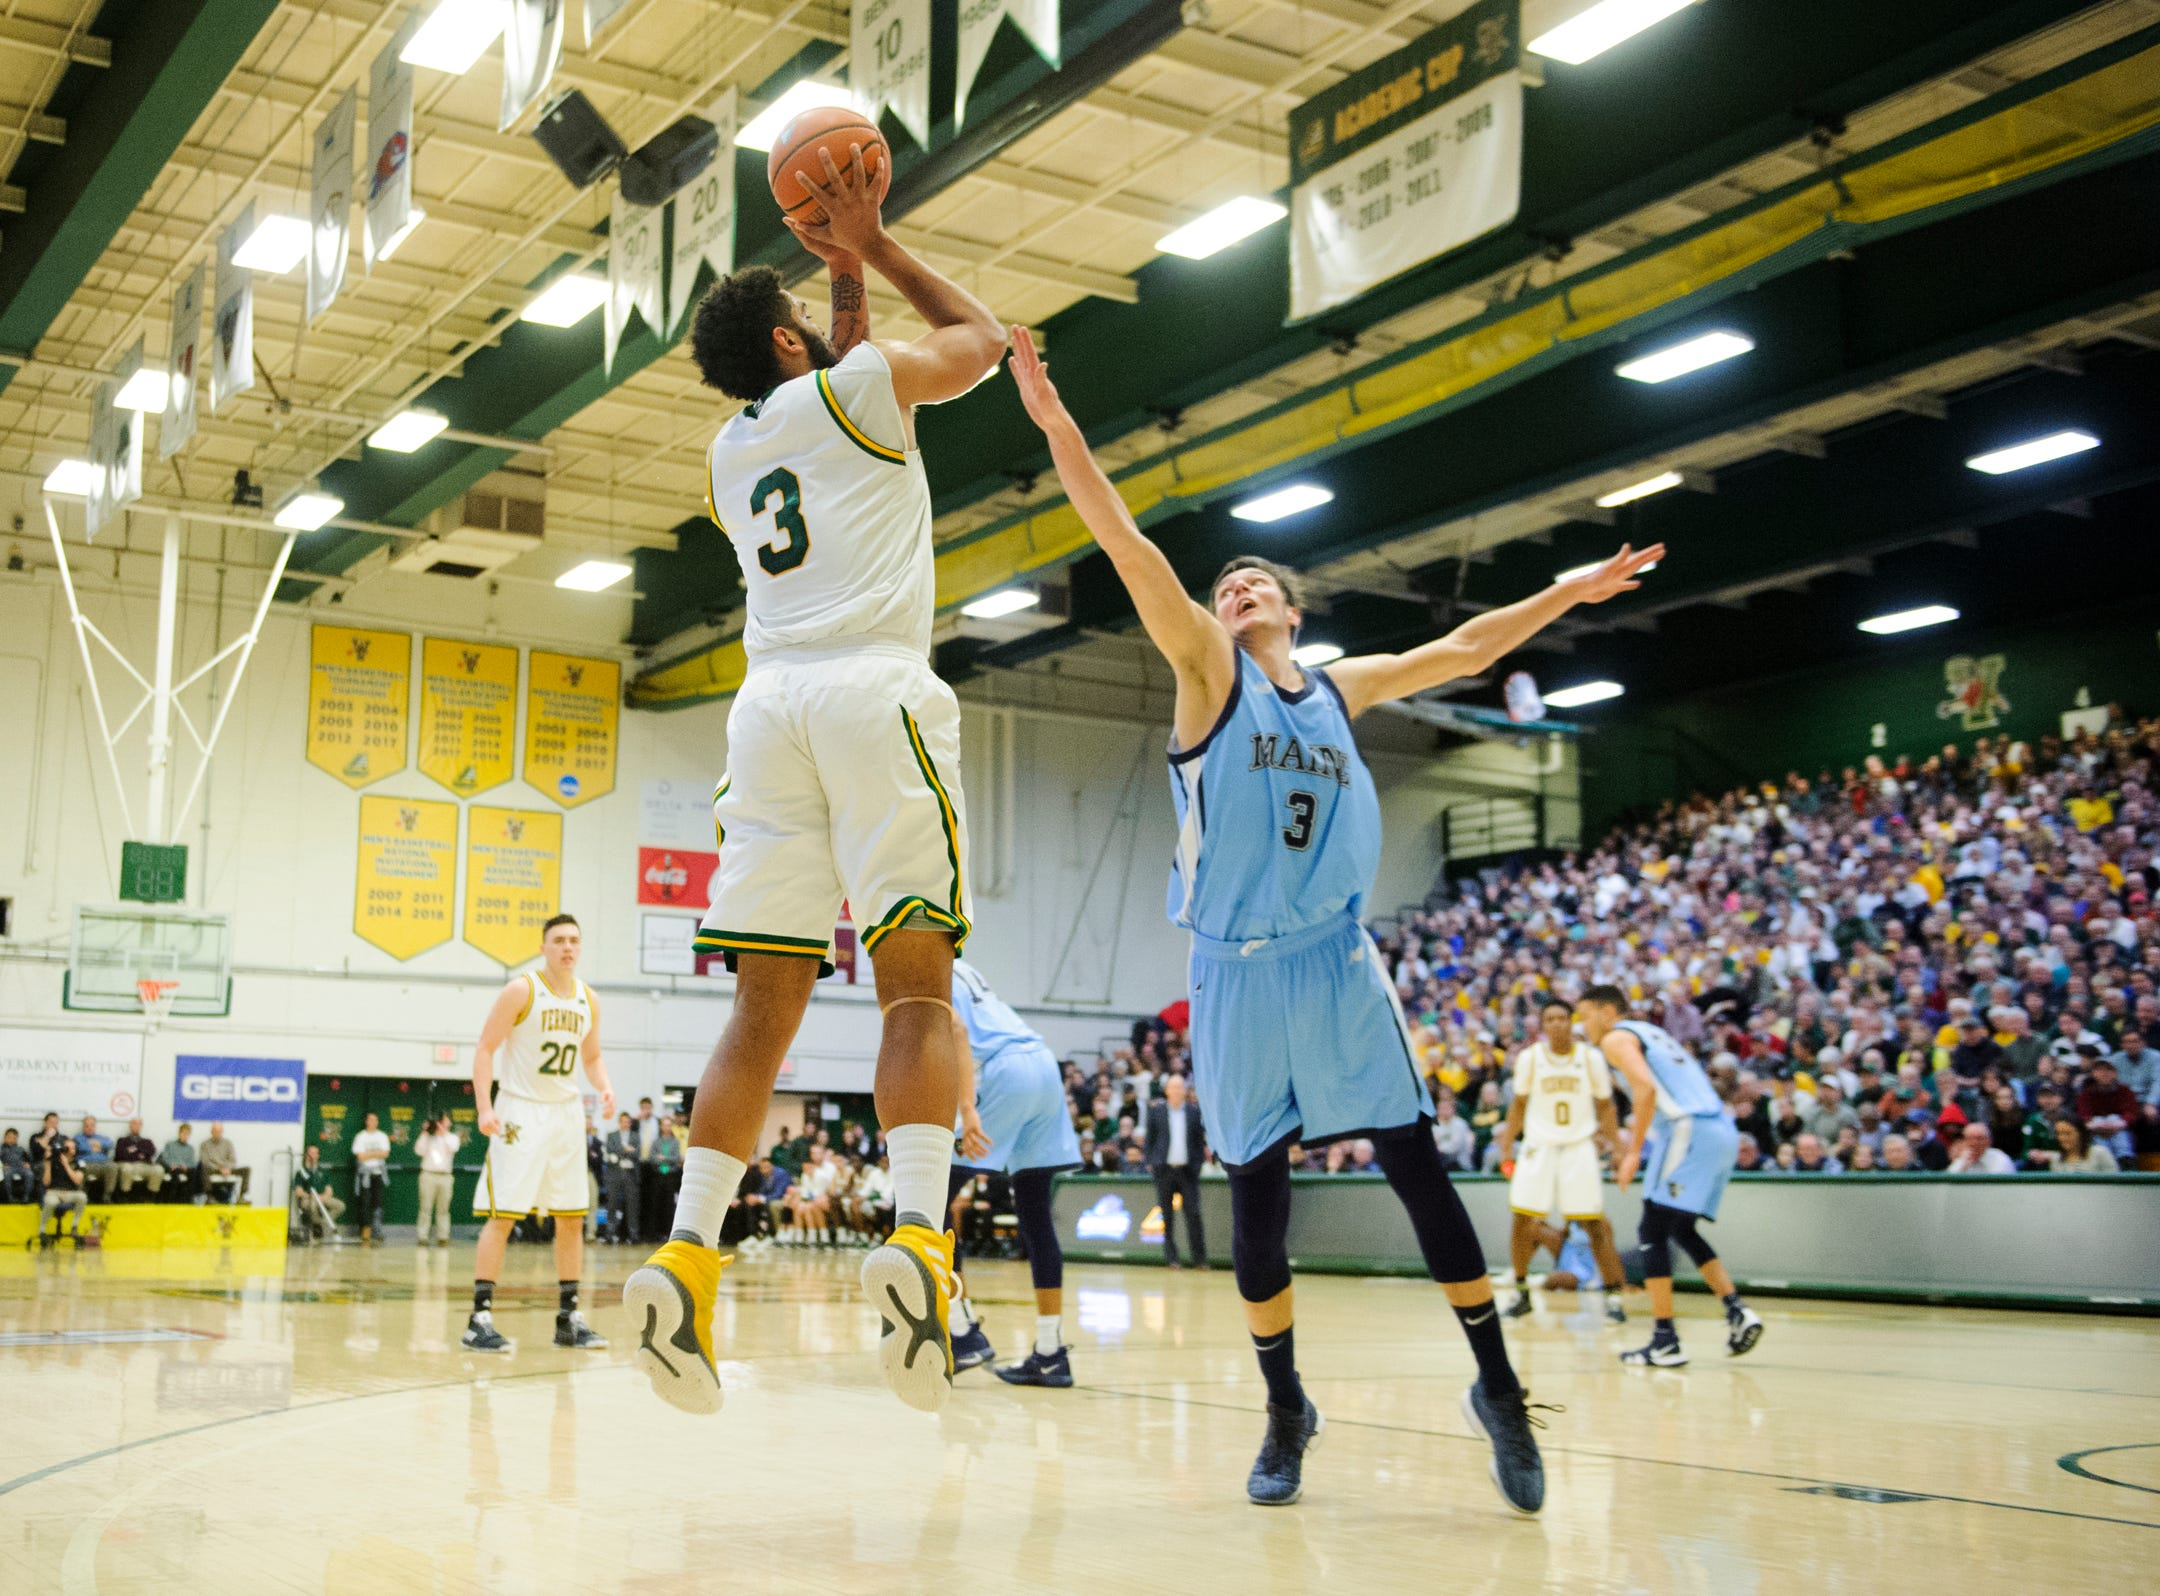 Vermont forward Anthony Lamb (3) shoots the ball over Maine's Vilgot Larsson (3) during the America East quarterfinal basketball game between the Maine Black Bears and the Vermont Catamounts at Patrick Gym on Saturday night March 9, 2019 in Burlington, Vermont.